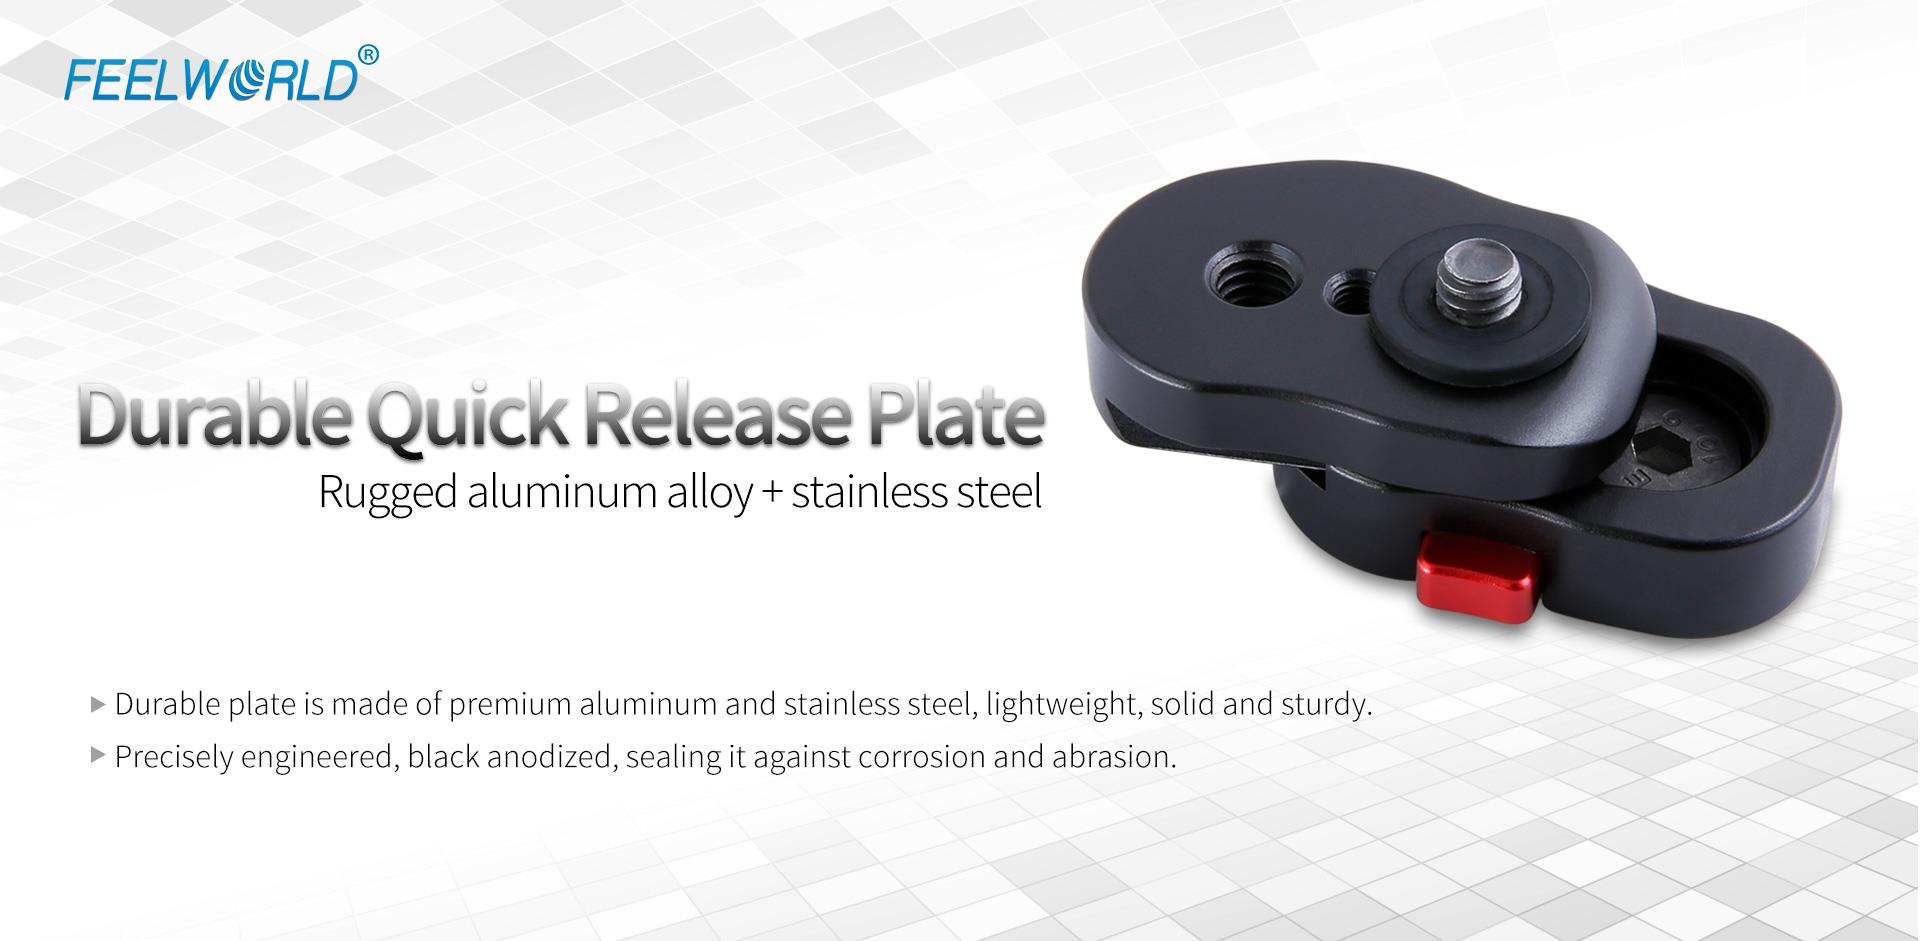 feelworld-quick-release-plate